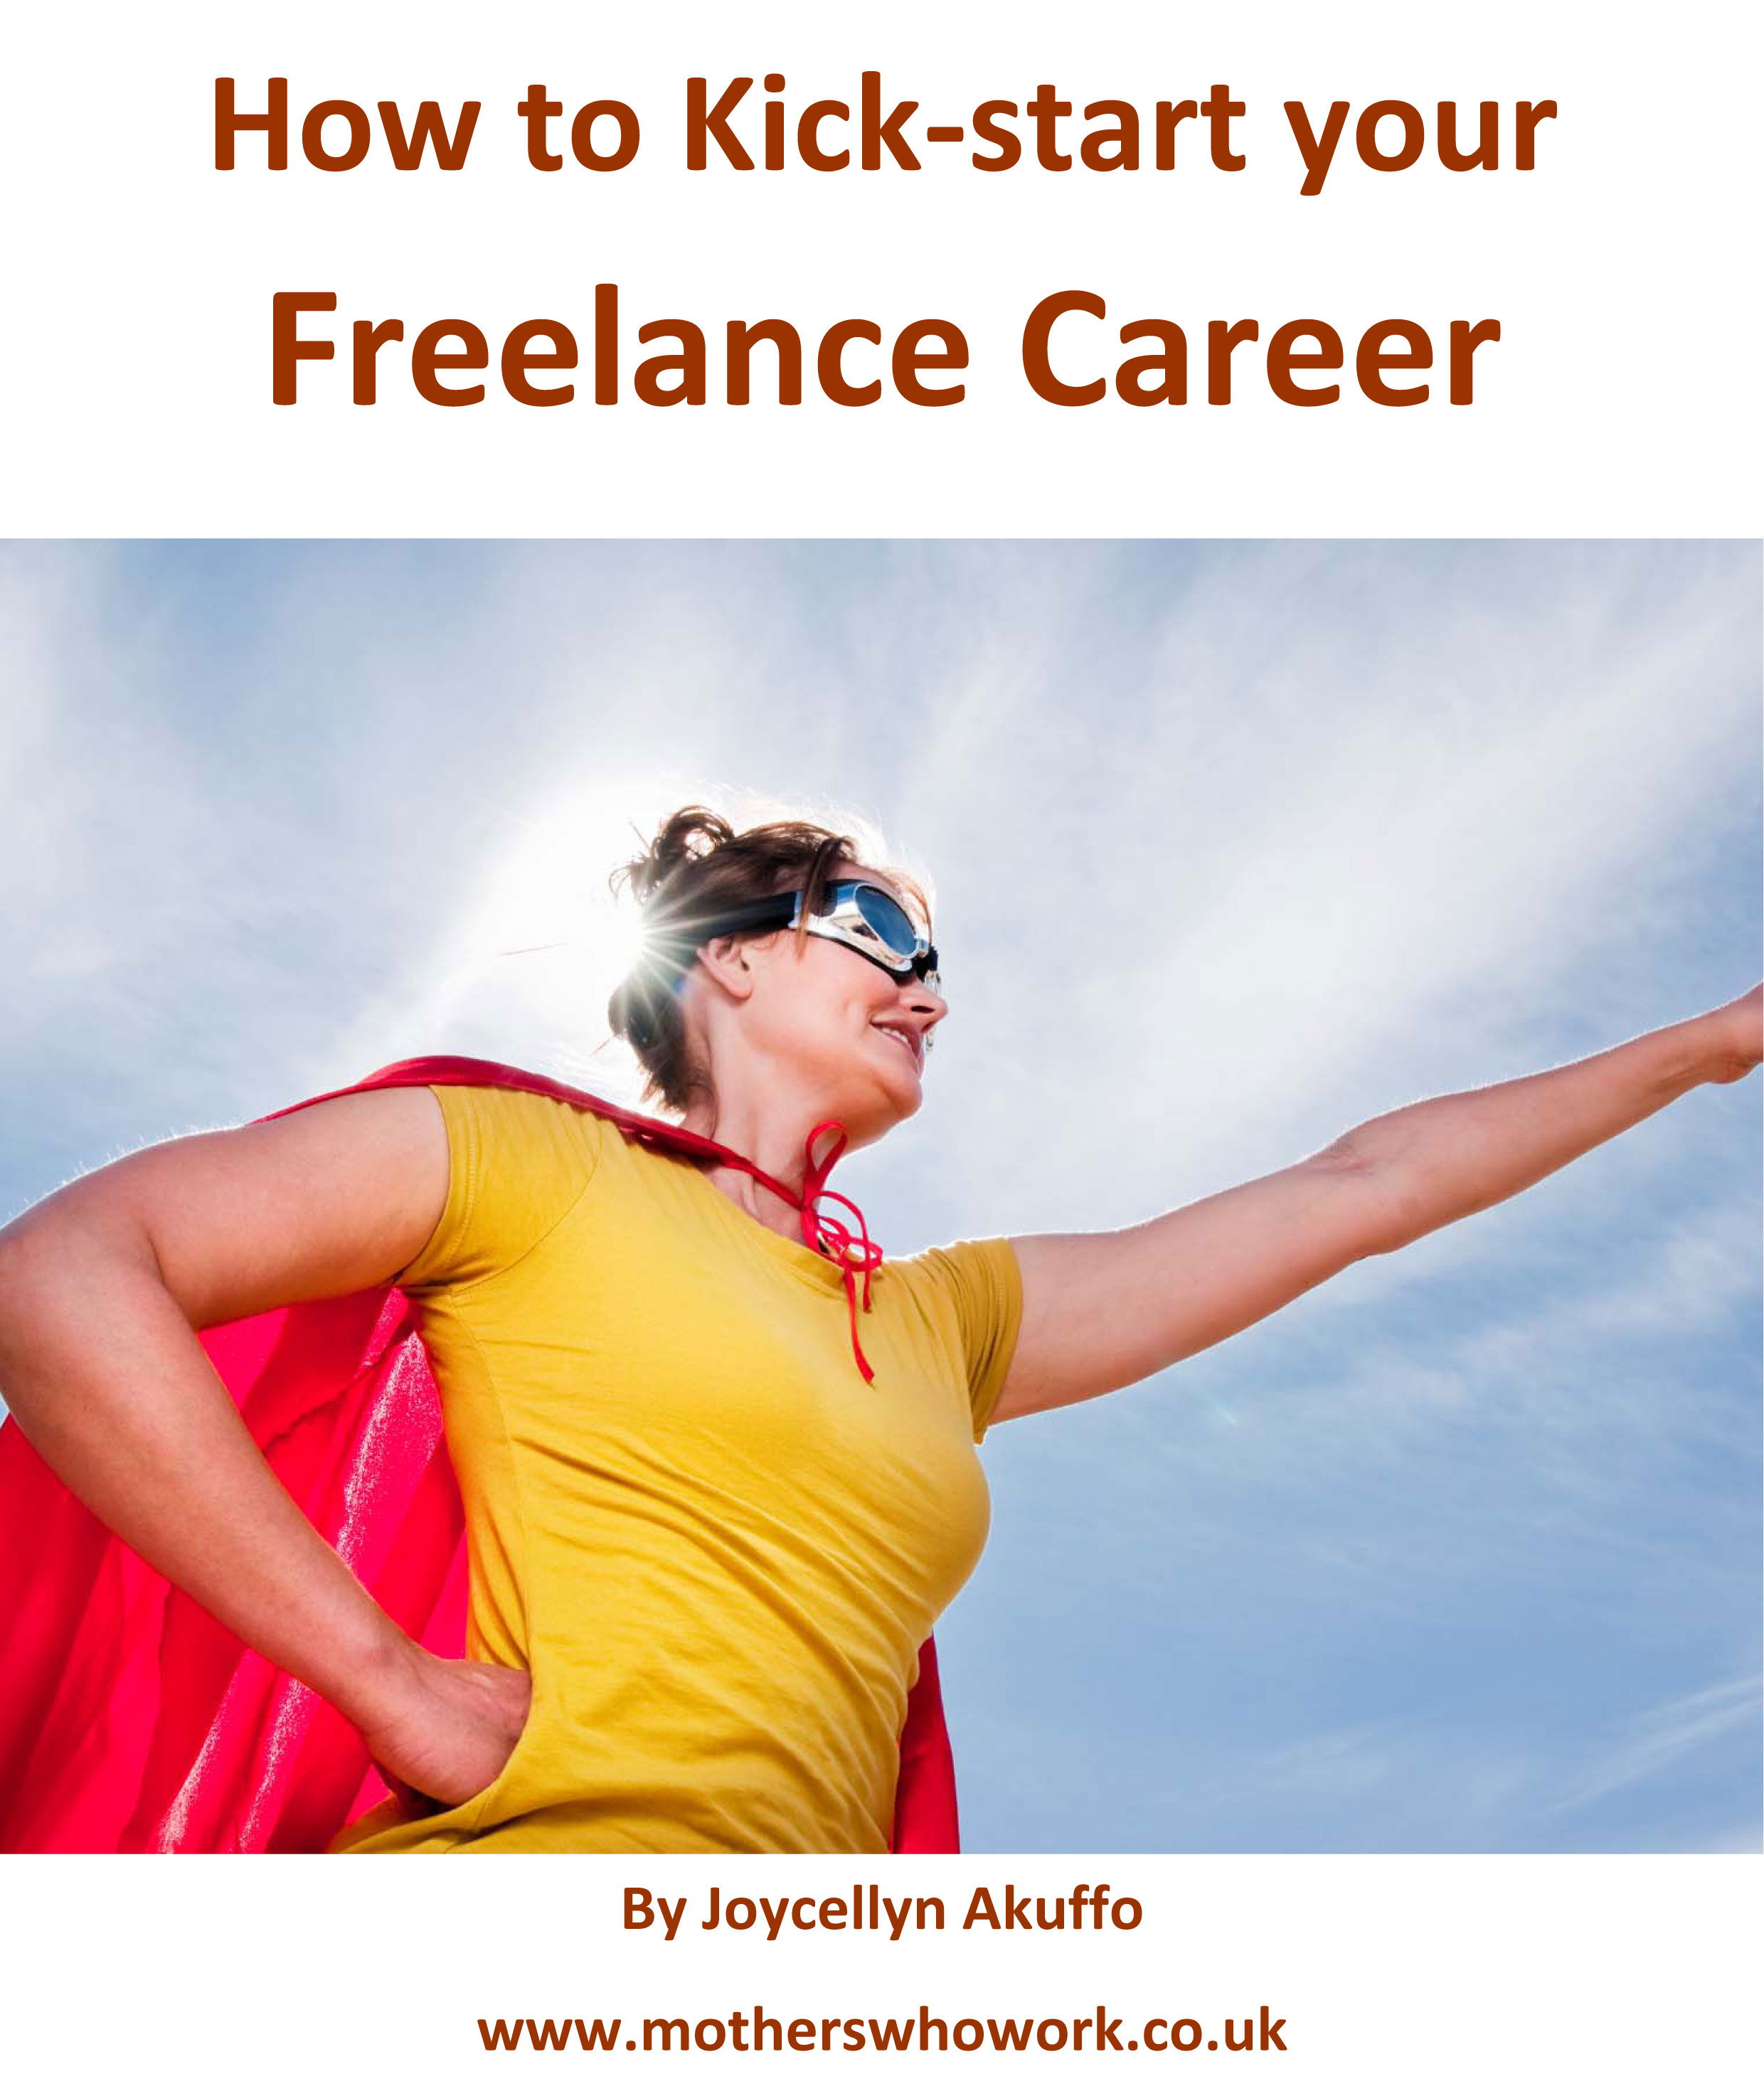 How-to-kick-start-your-freelance-career